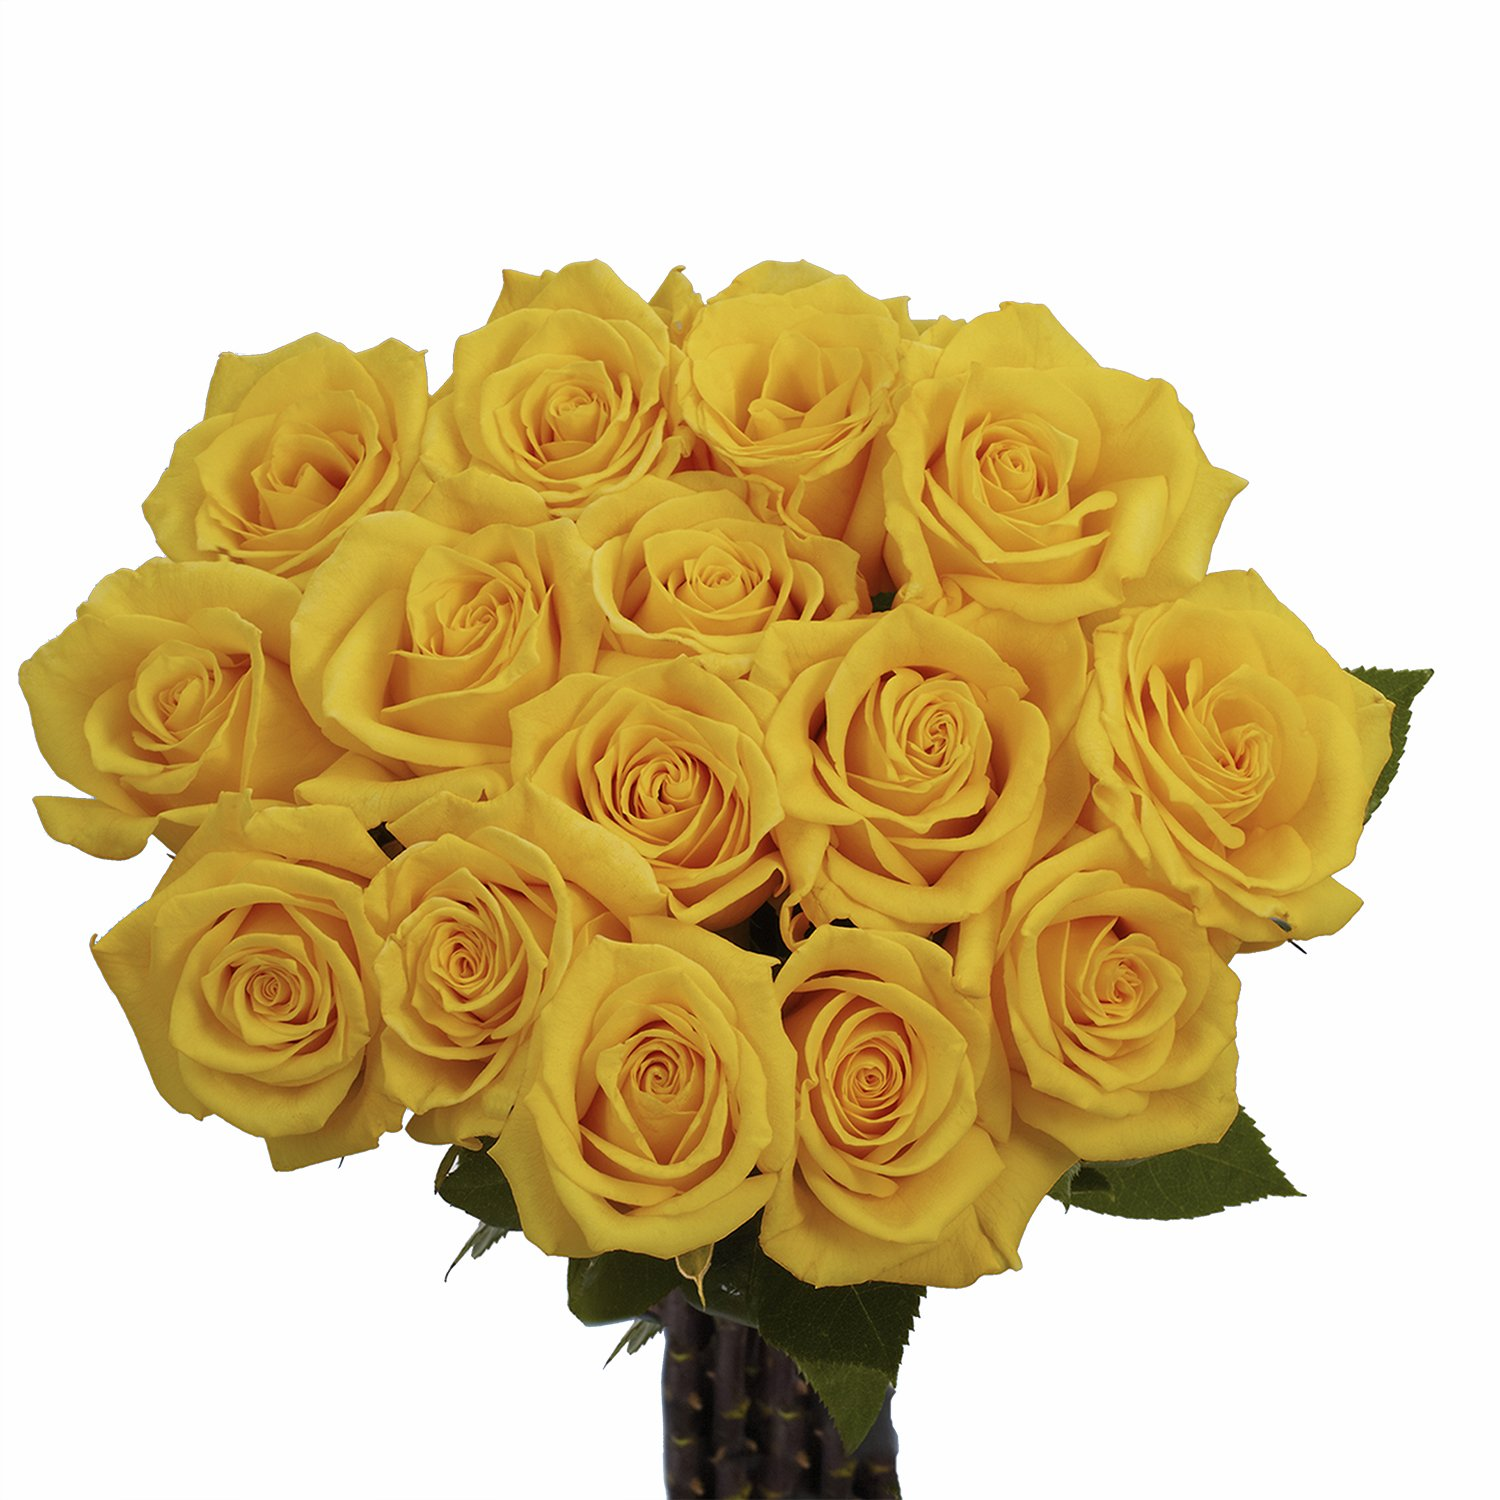 GlobalRose Yellow Roses - Fresh Flowers Delivery- 50 Long Stems